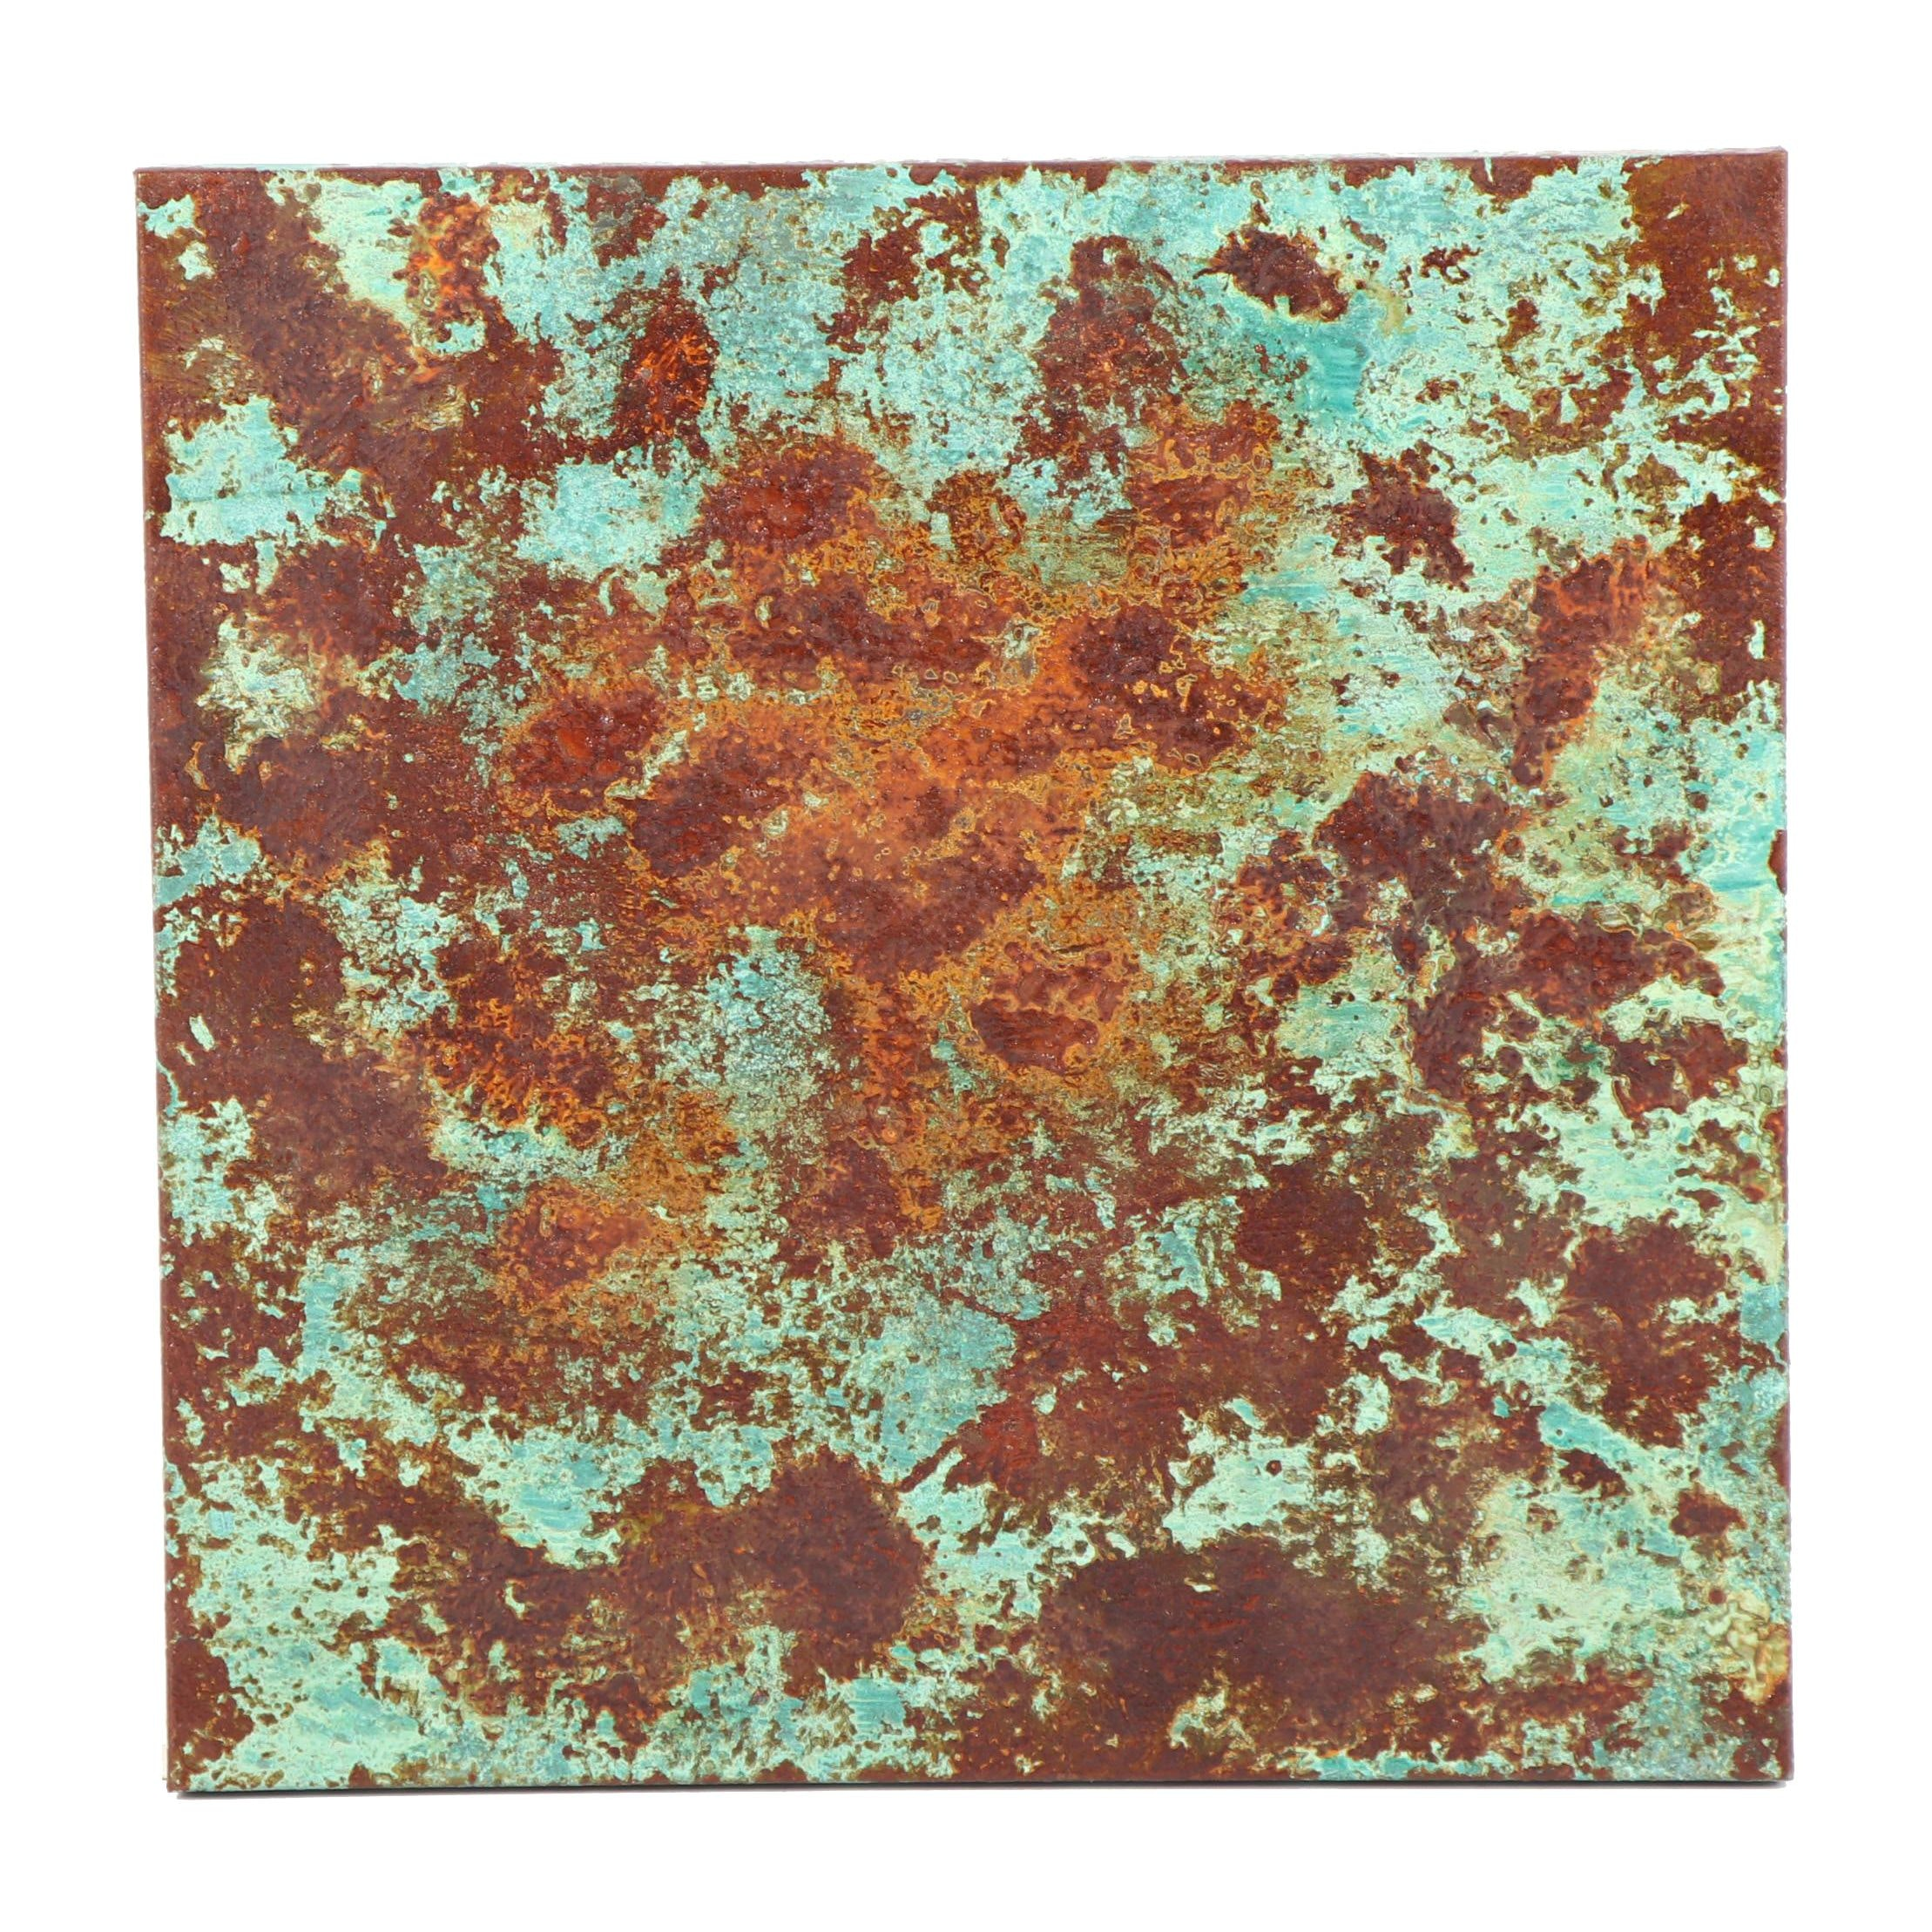 Lisa Steele Abstract Copper and Iron Infused Acrylic Painting